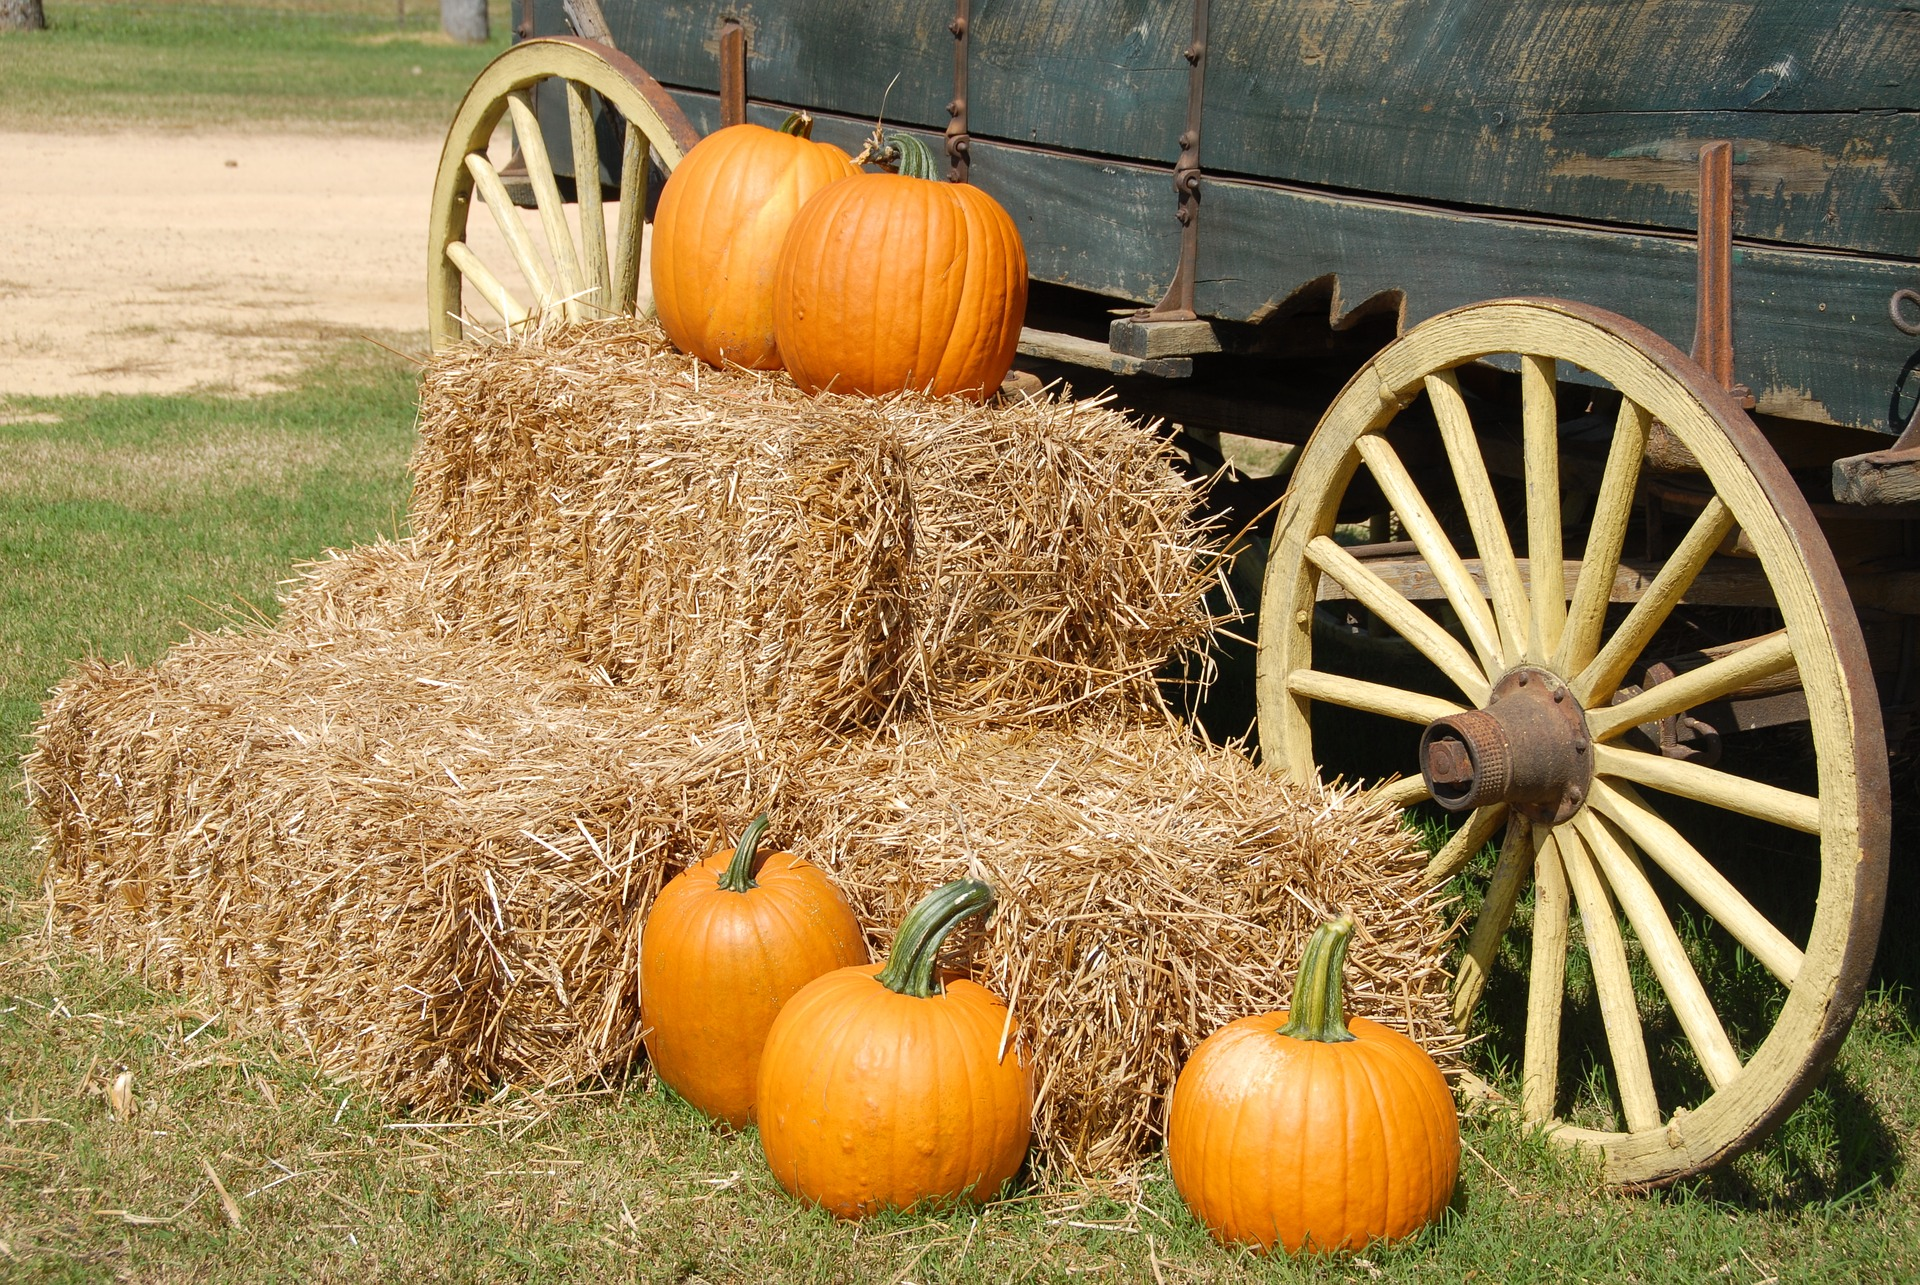 October is also the perfect time to go pumpkin picking!